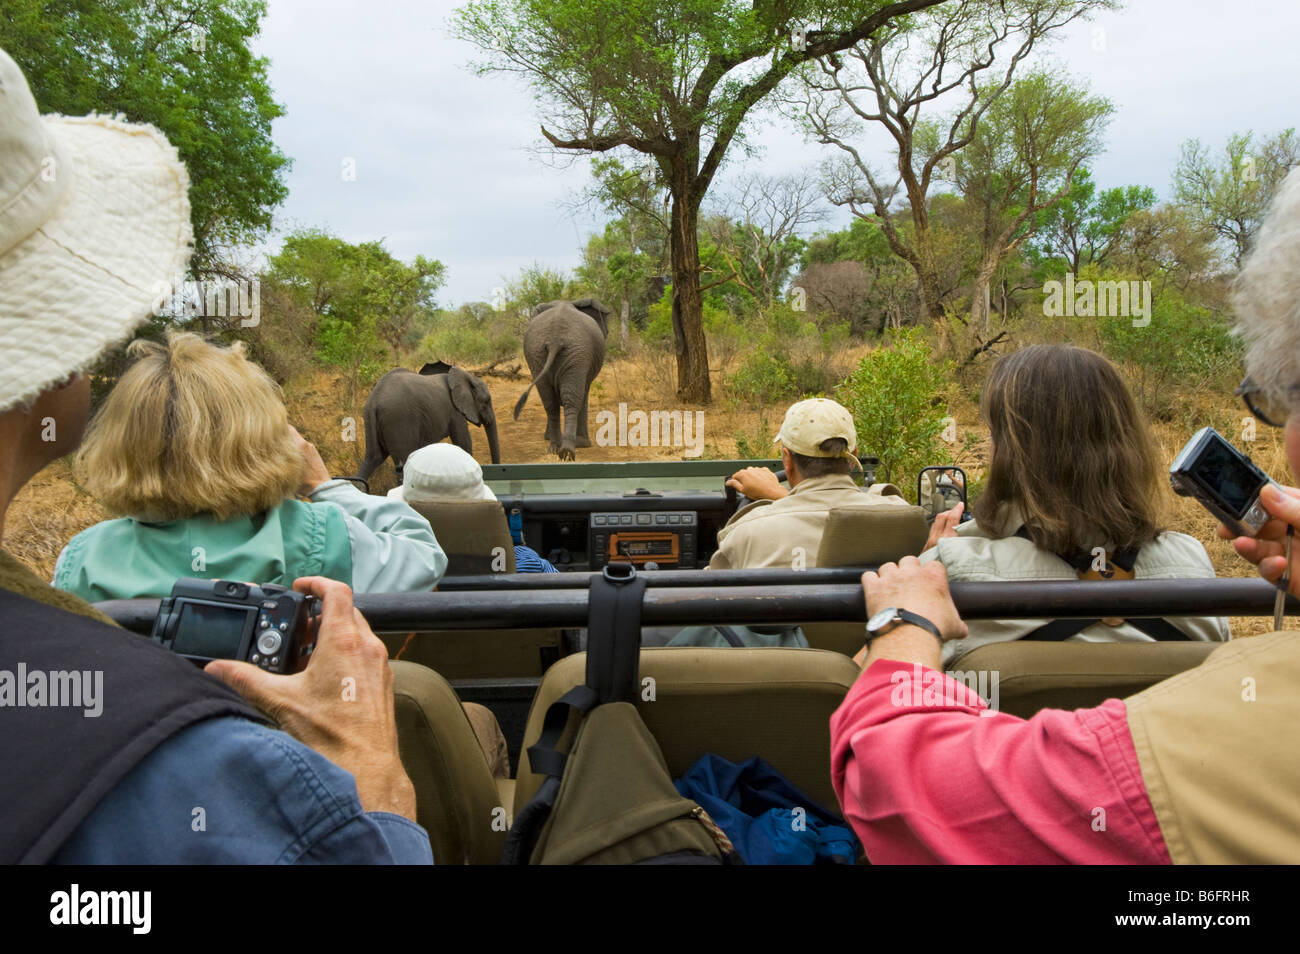 Game drive adventure South-Africa jeep vehicle people SAFARI car bus minibus south-africa elefant crossing animal - Stock Image